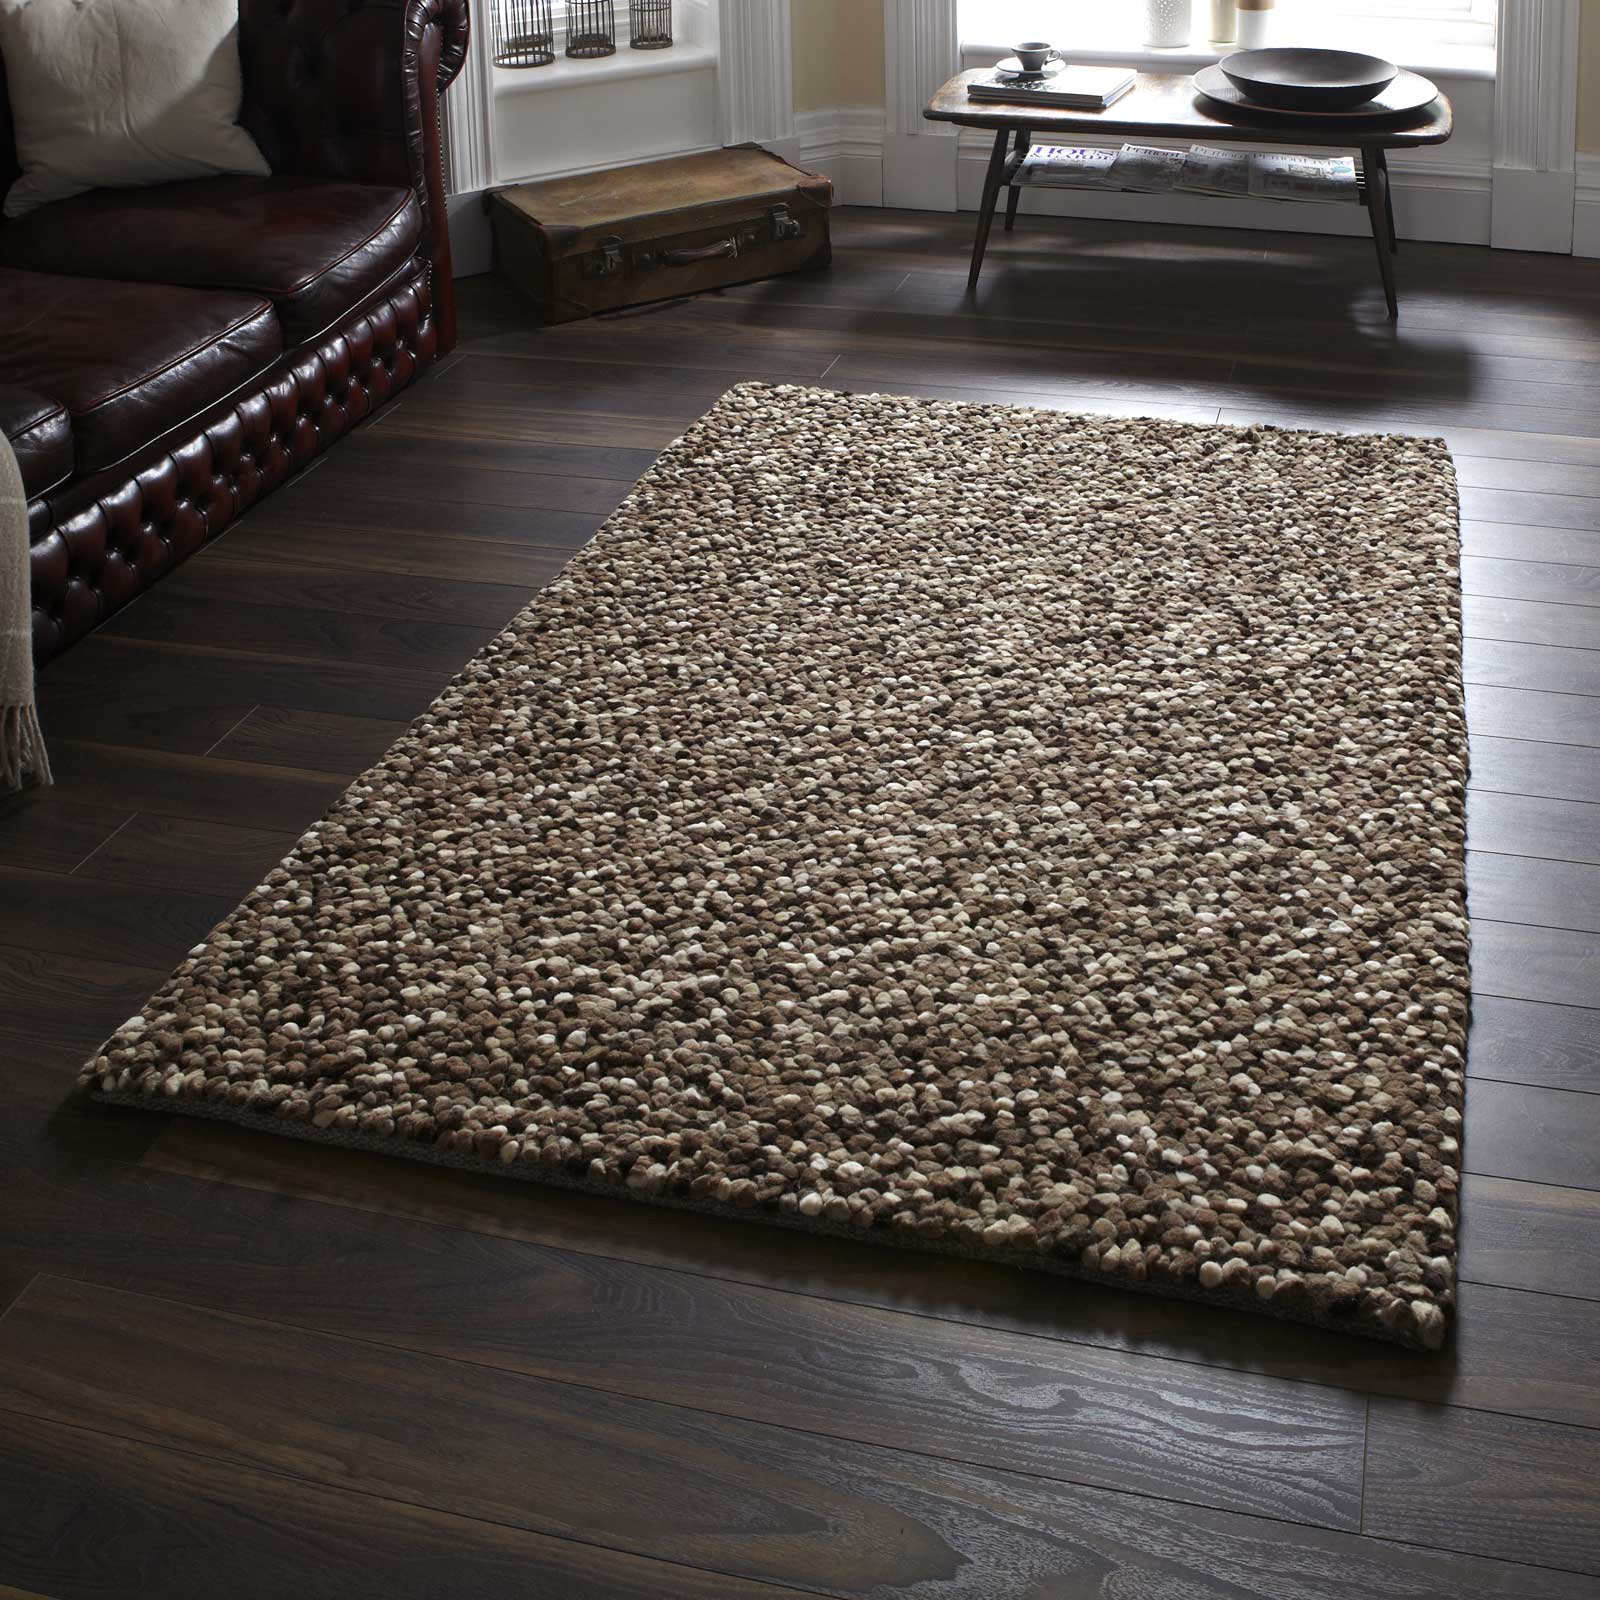 Pebbles Wool Shaggy Rugs In Beige